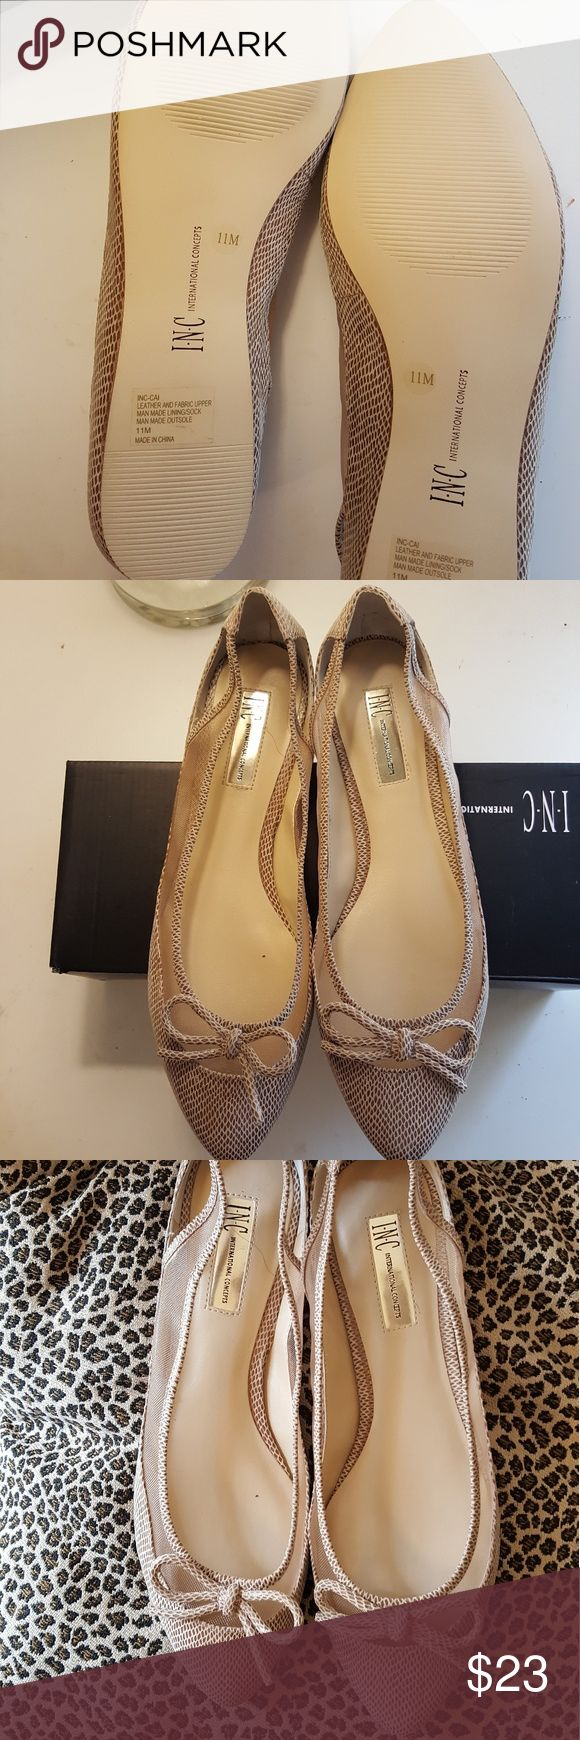 Inc international concepts snakeskin nude flats Inc international concepts snakeskin  tan nude flats with cut out and mesh detail.   11m  New in box INC International Concepts Shoes Flats & Loafers